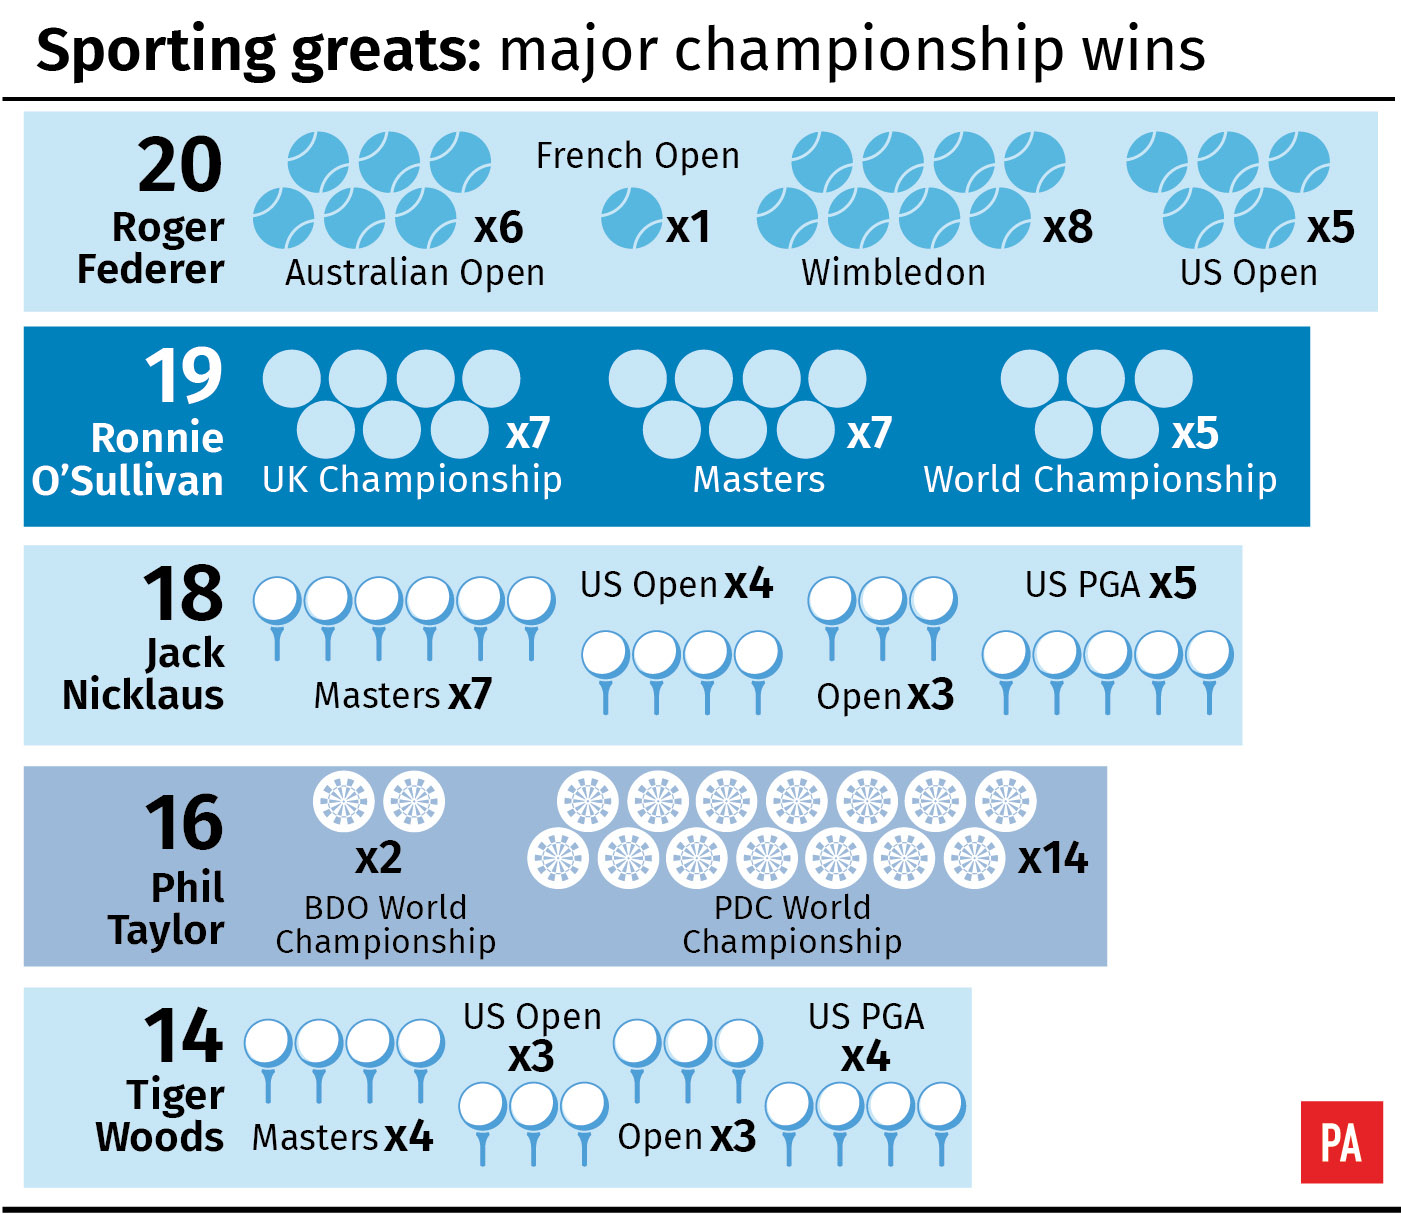 Sporting greats: Major championship wins